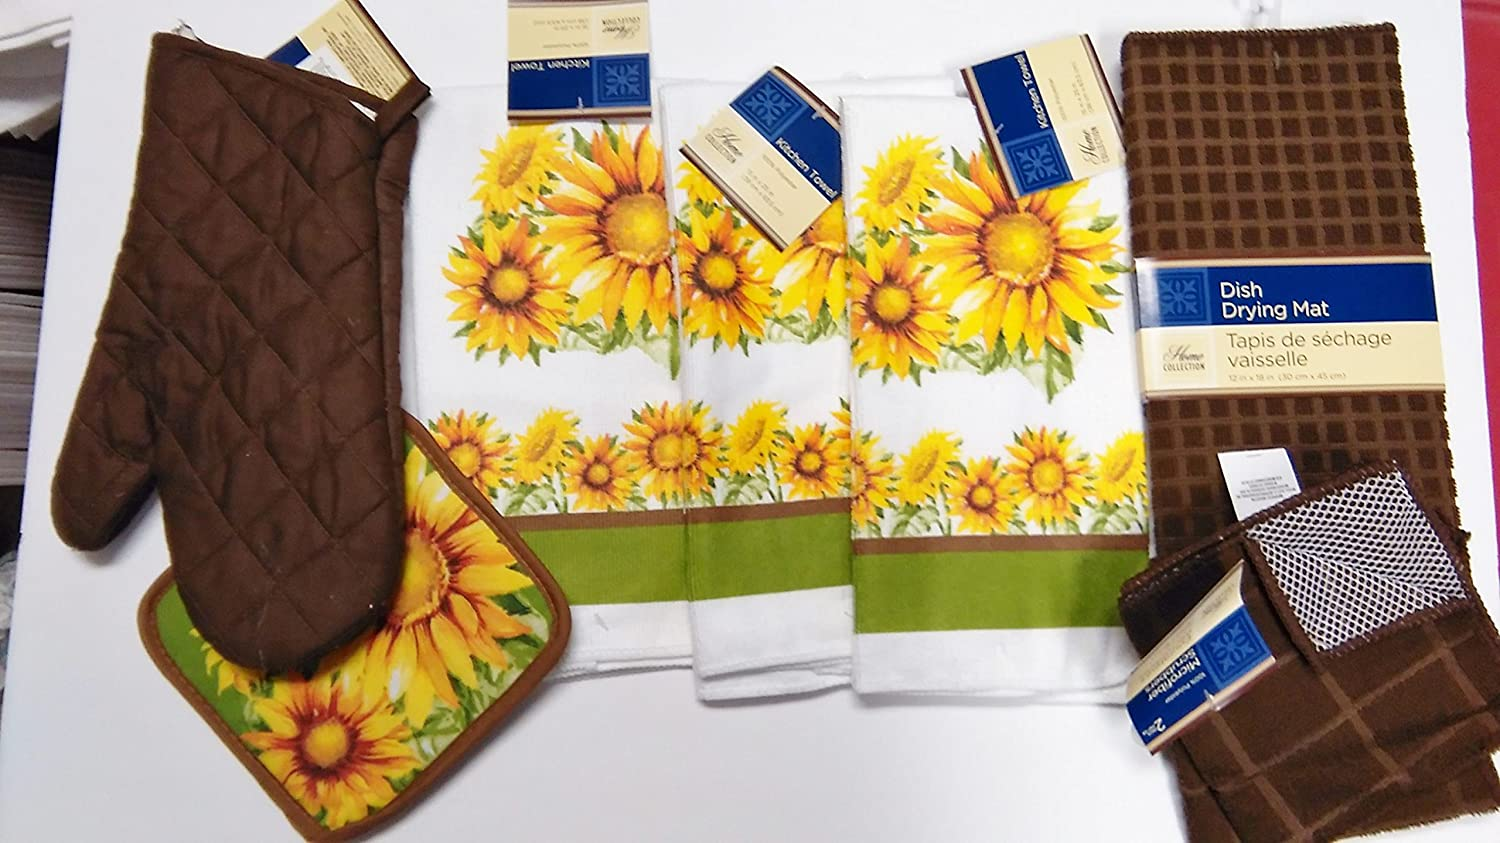 Sunflower Dish Towels with Matching Pot Holder, Brown Oven Mitt and Brown Dish Drying mat